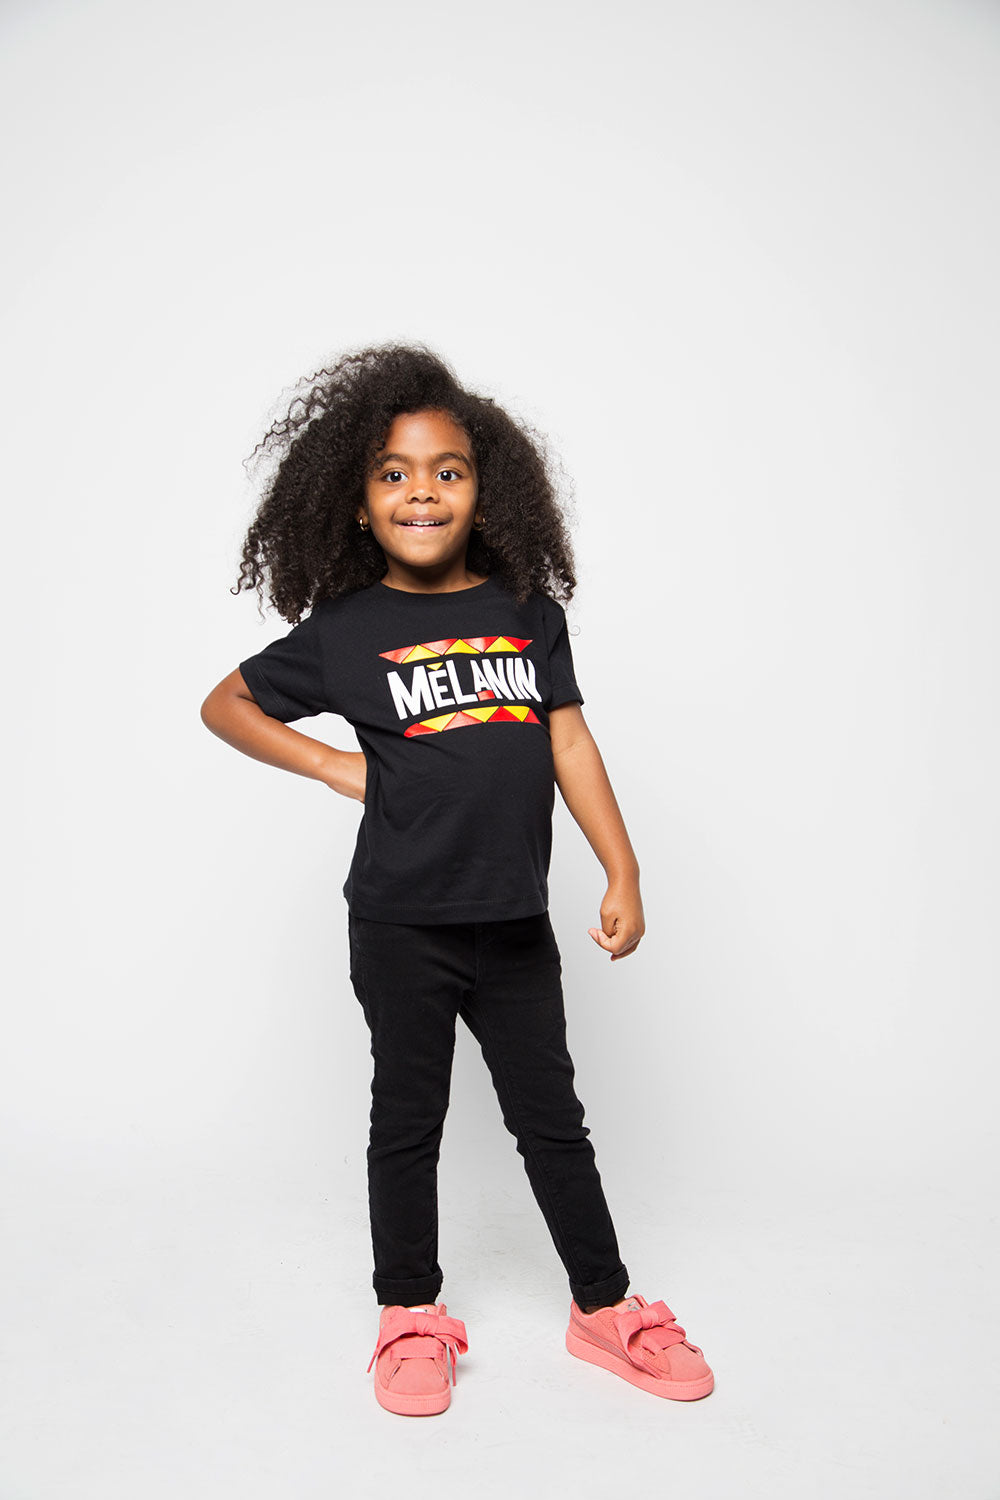 Melanin Kids Shirt in Black - Trunk Series, LLC